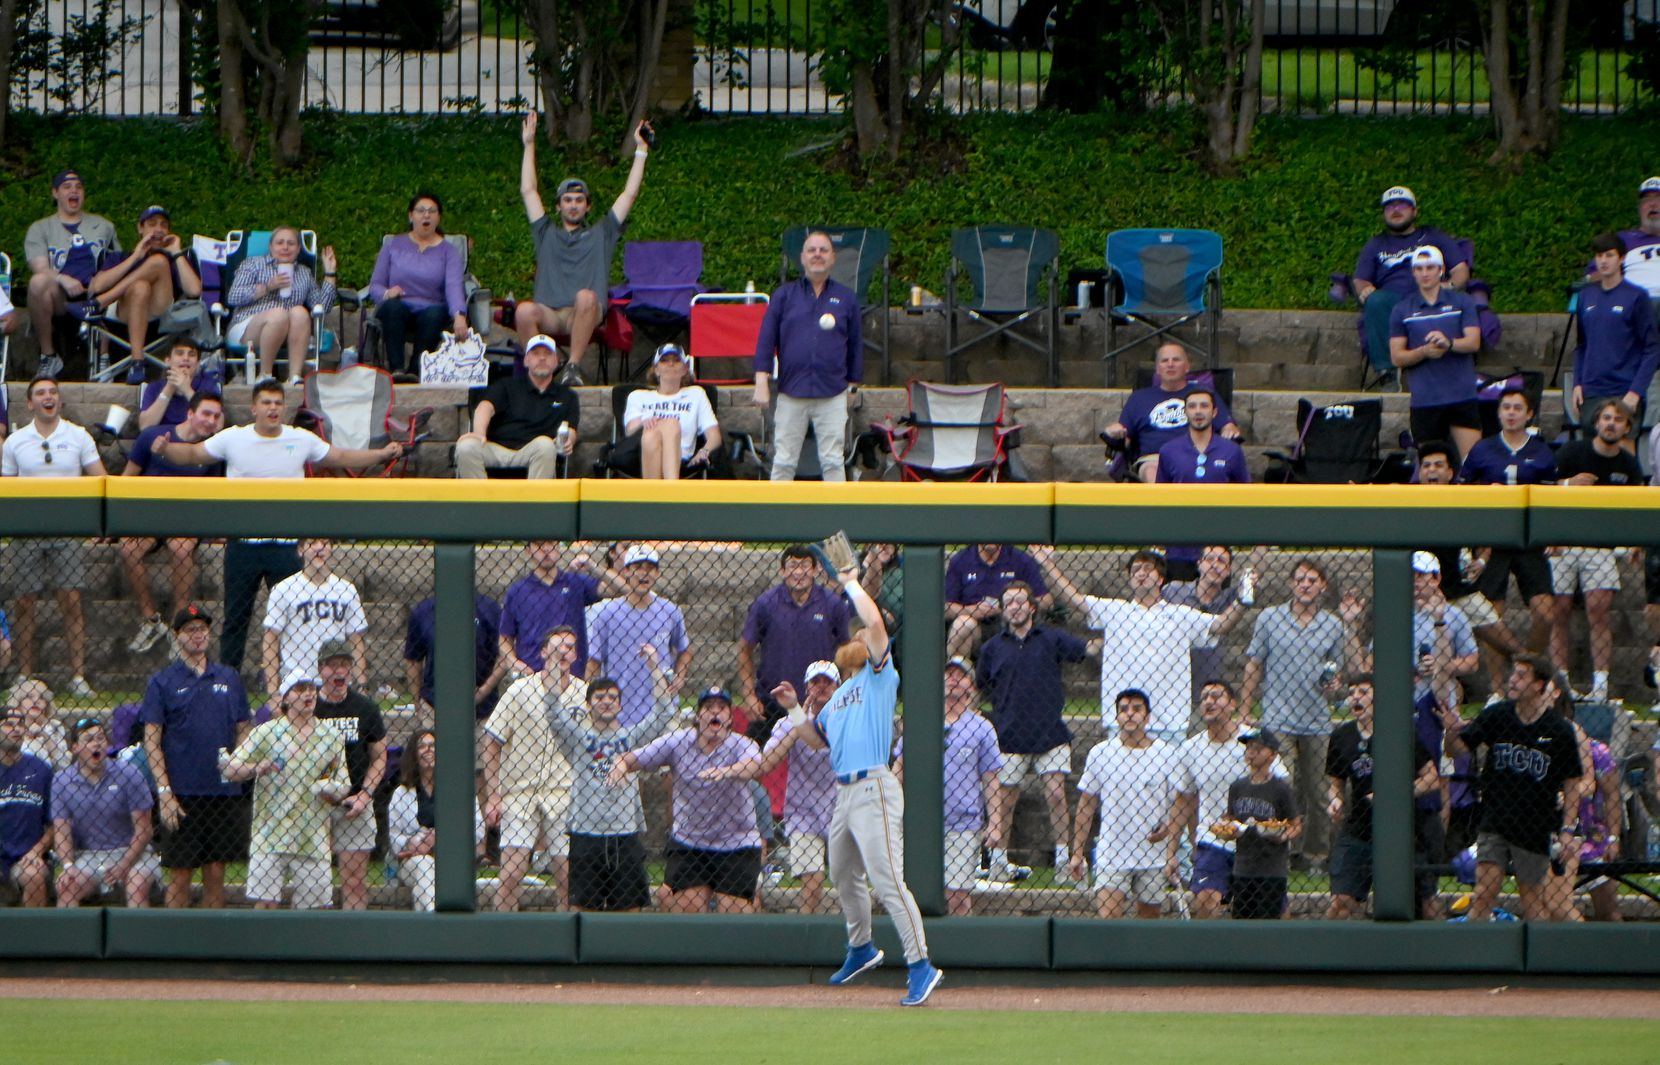 TCU fans react as  McNeese State outfielder Clayton Rasbeary (34) makes a catch at the well in the sixth inning of their game in the Fort Worth Regional NCAA baseball tournament, Friday, June 4, 2021, in Fort Worth, Texas. (Matt Strasen/Special Contributor)